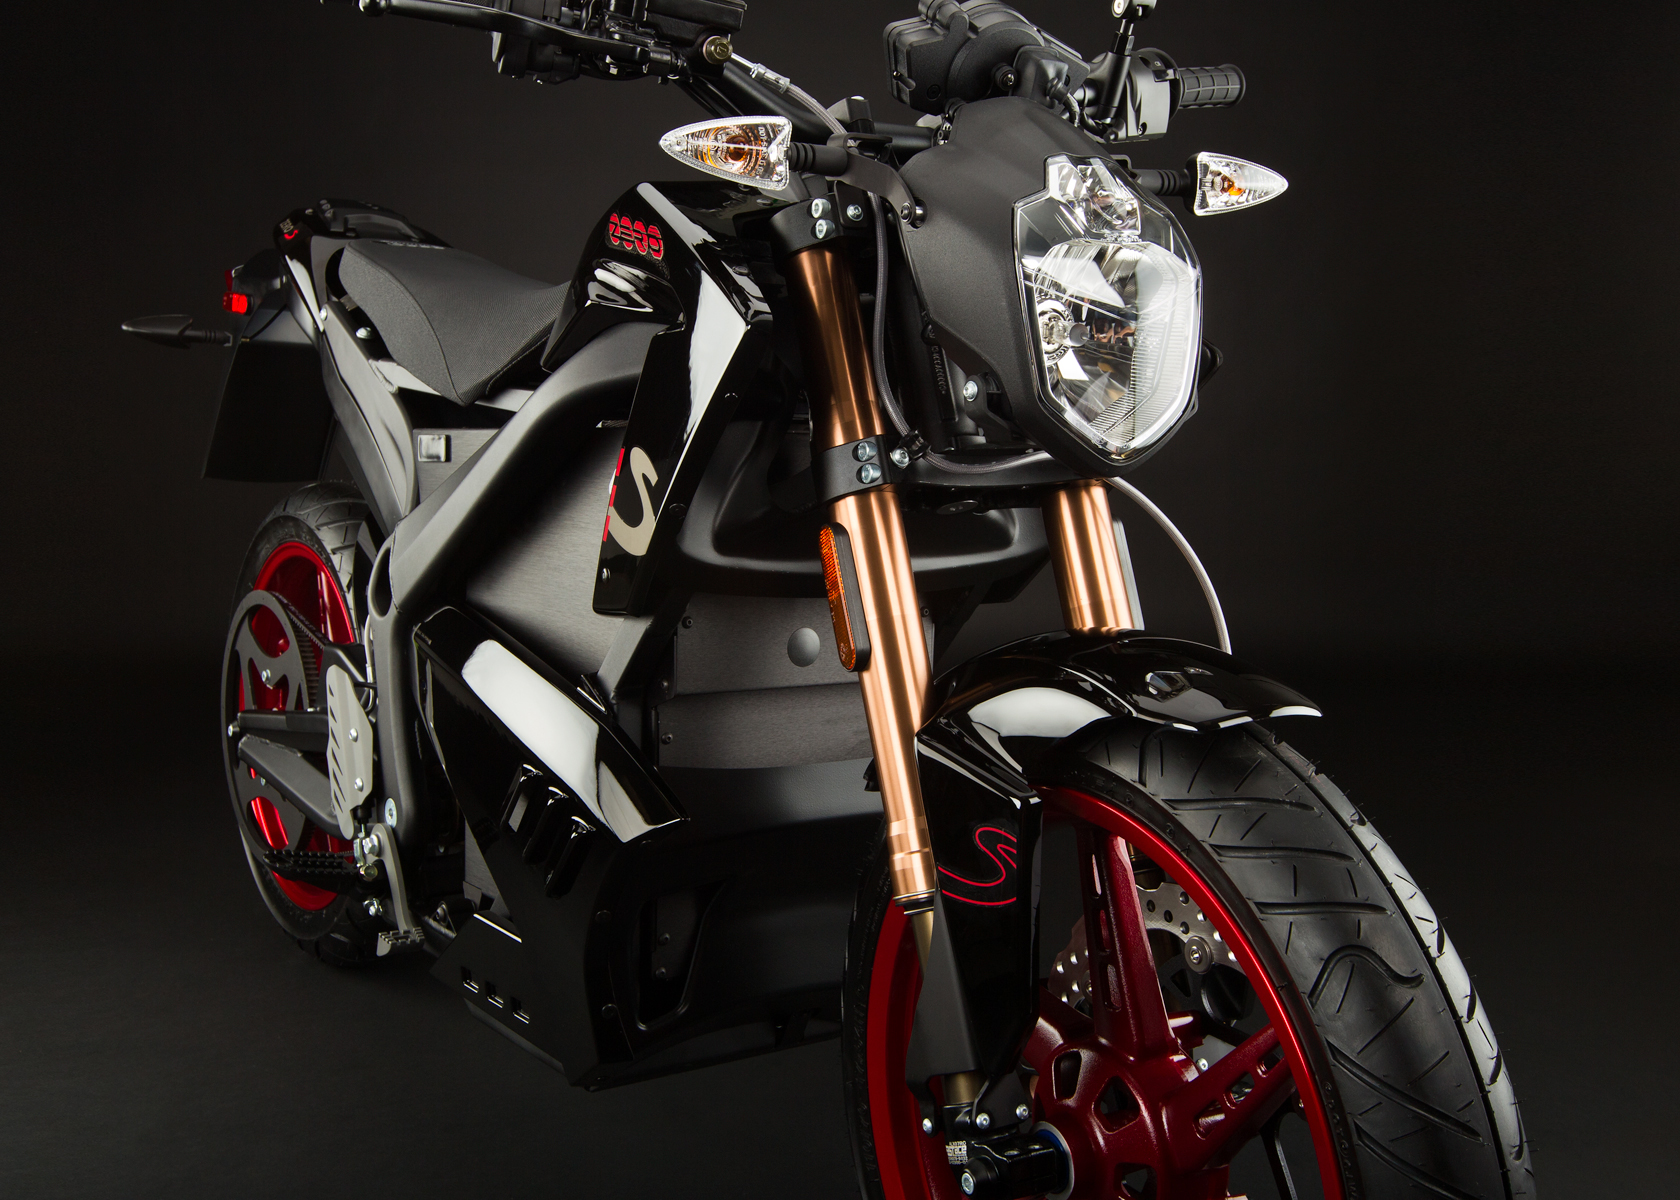 2012 Zero S Electric Motorcycle: Front Fork